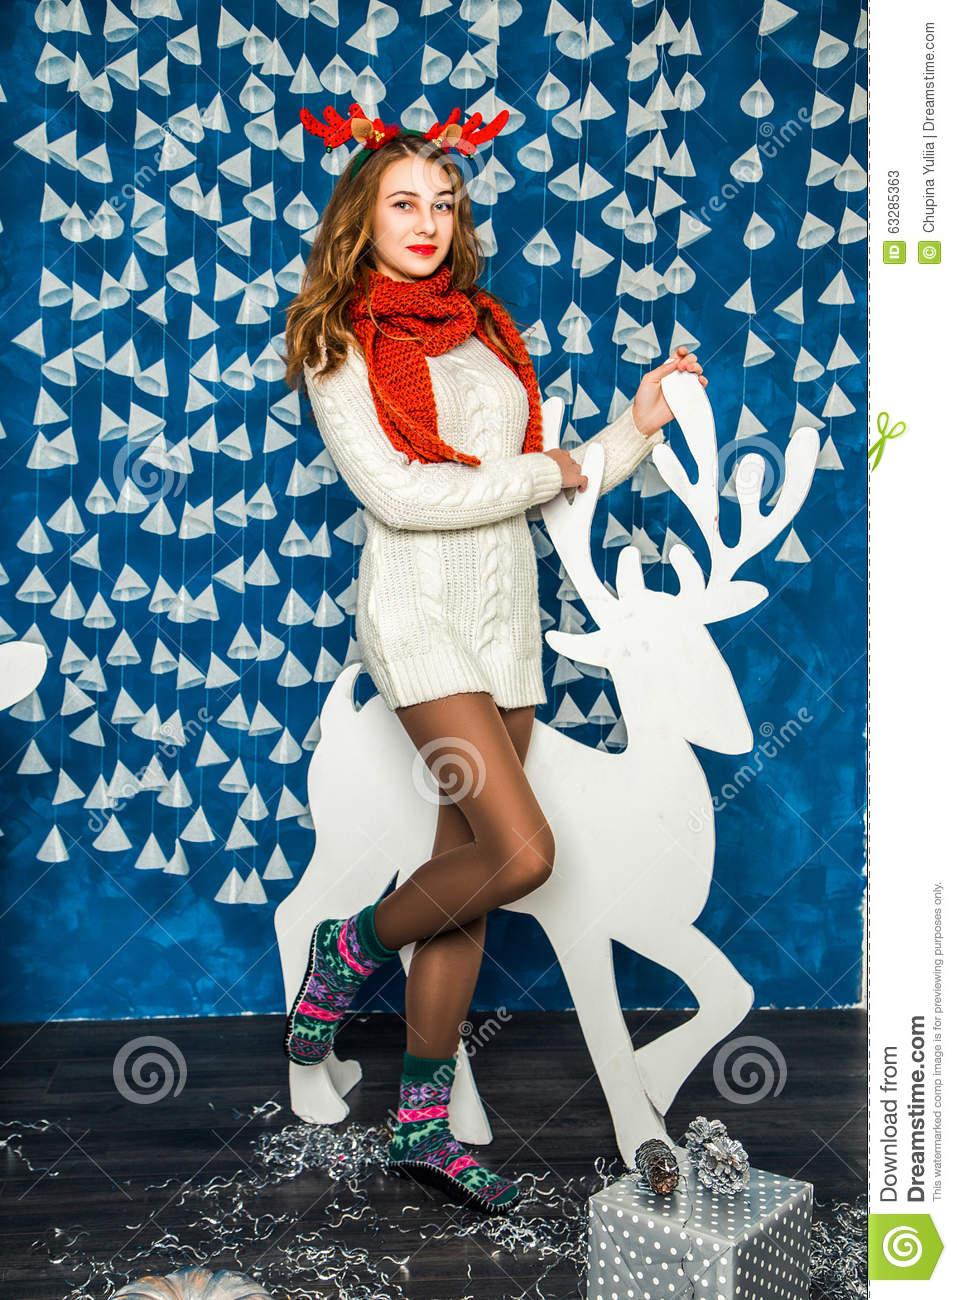 Beautiful girl on the background of blue wall with garlands and